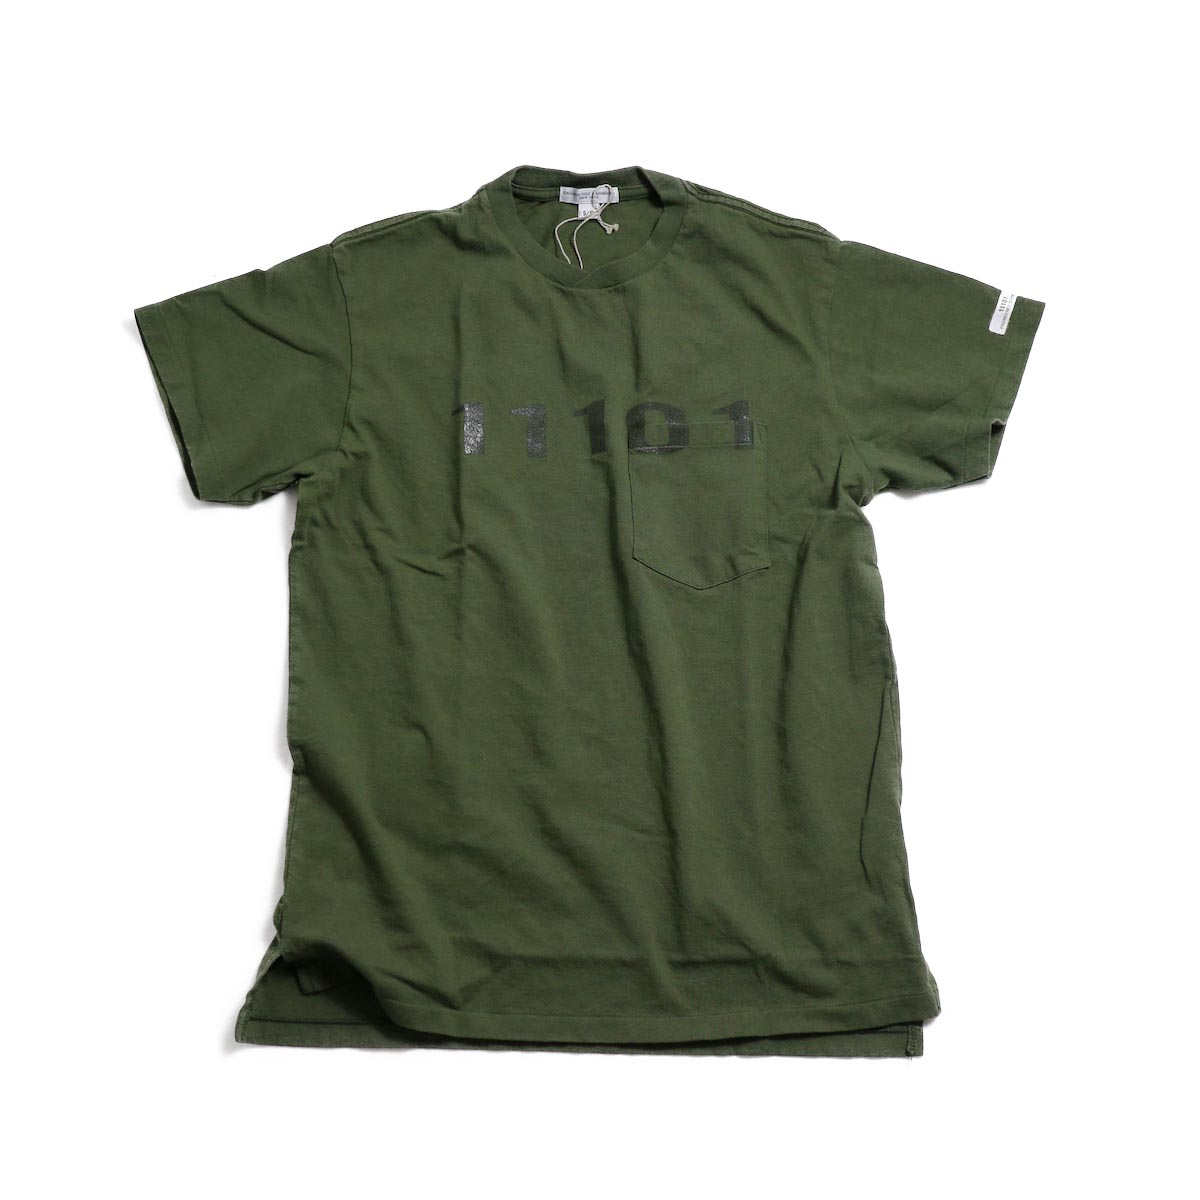 ENGINEERED GARMENTS / Printed Cross Crew Neck T-shirt 11101 -OLIVE